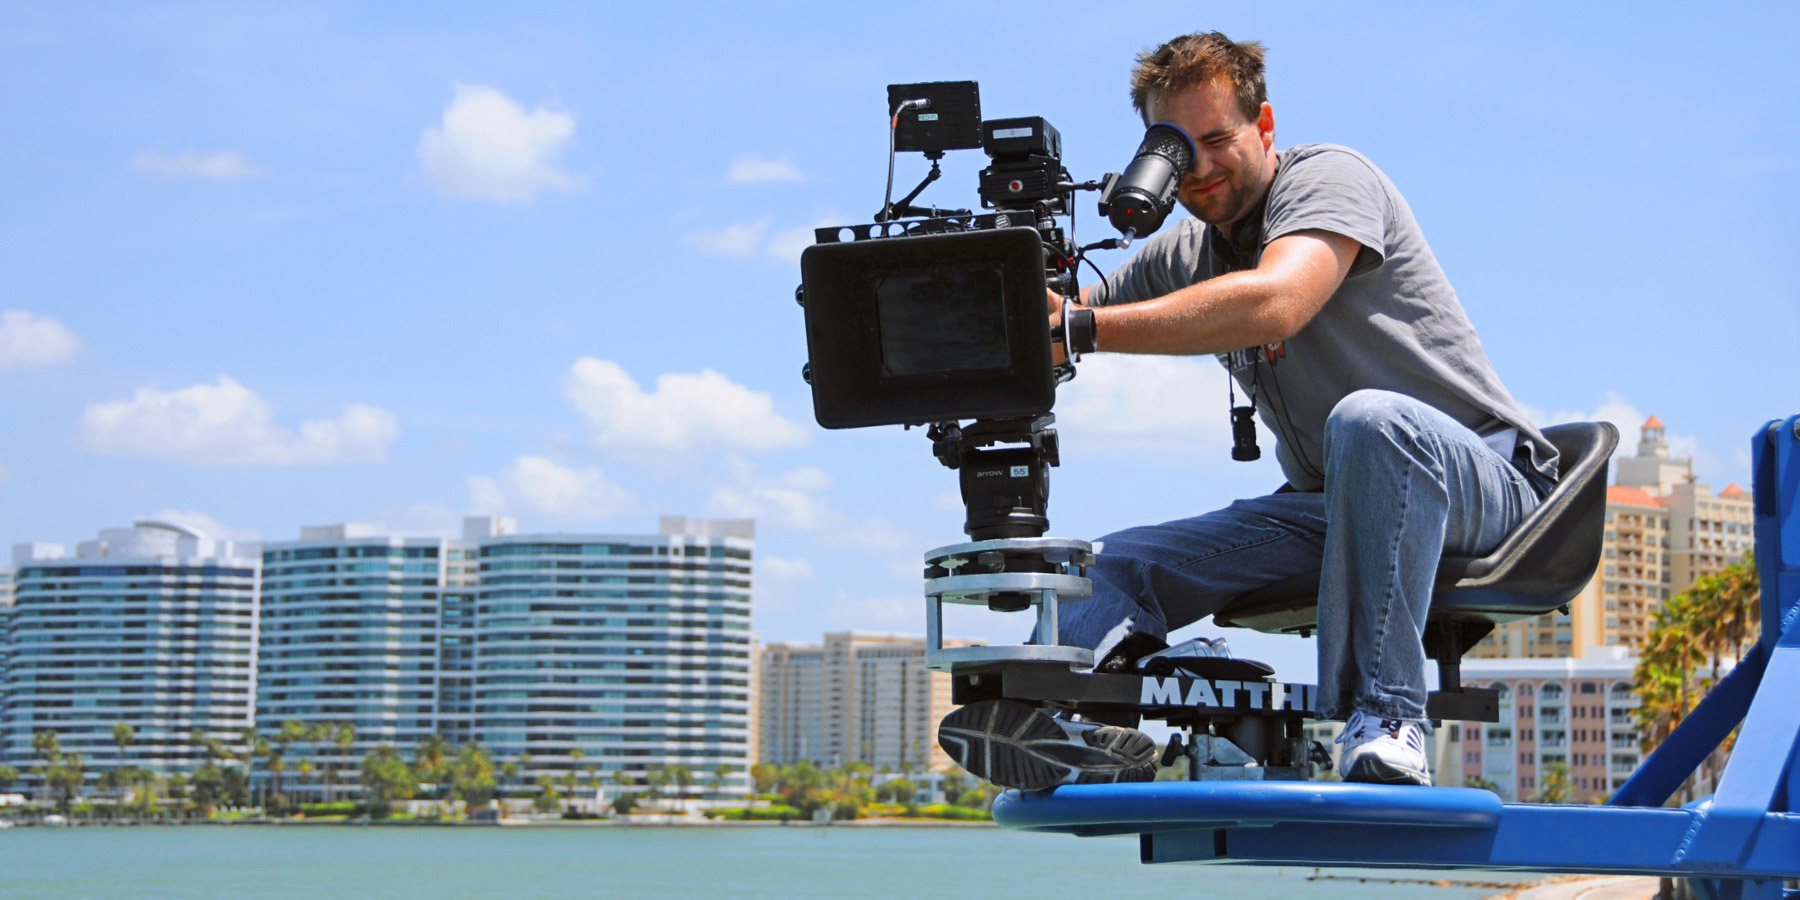 Cameraman filming with a professional rig near the Sarasota waterfront